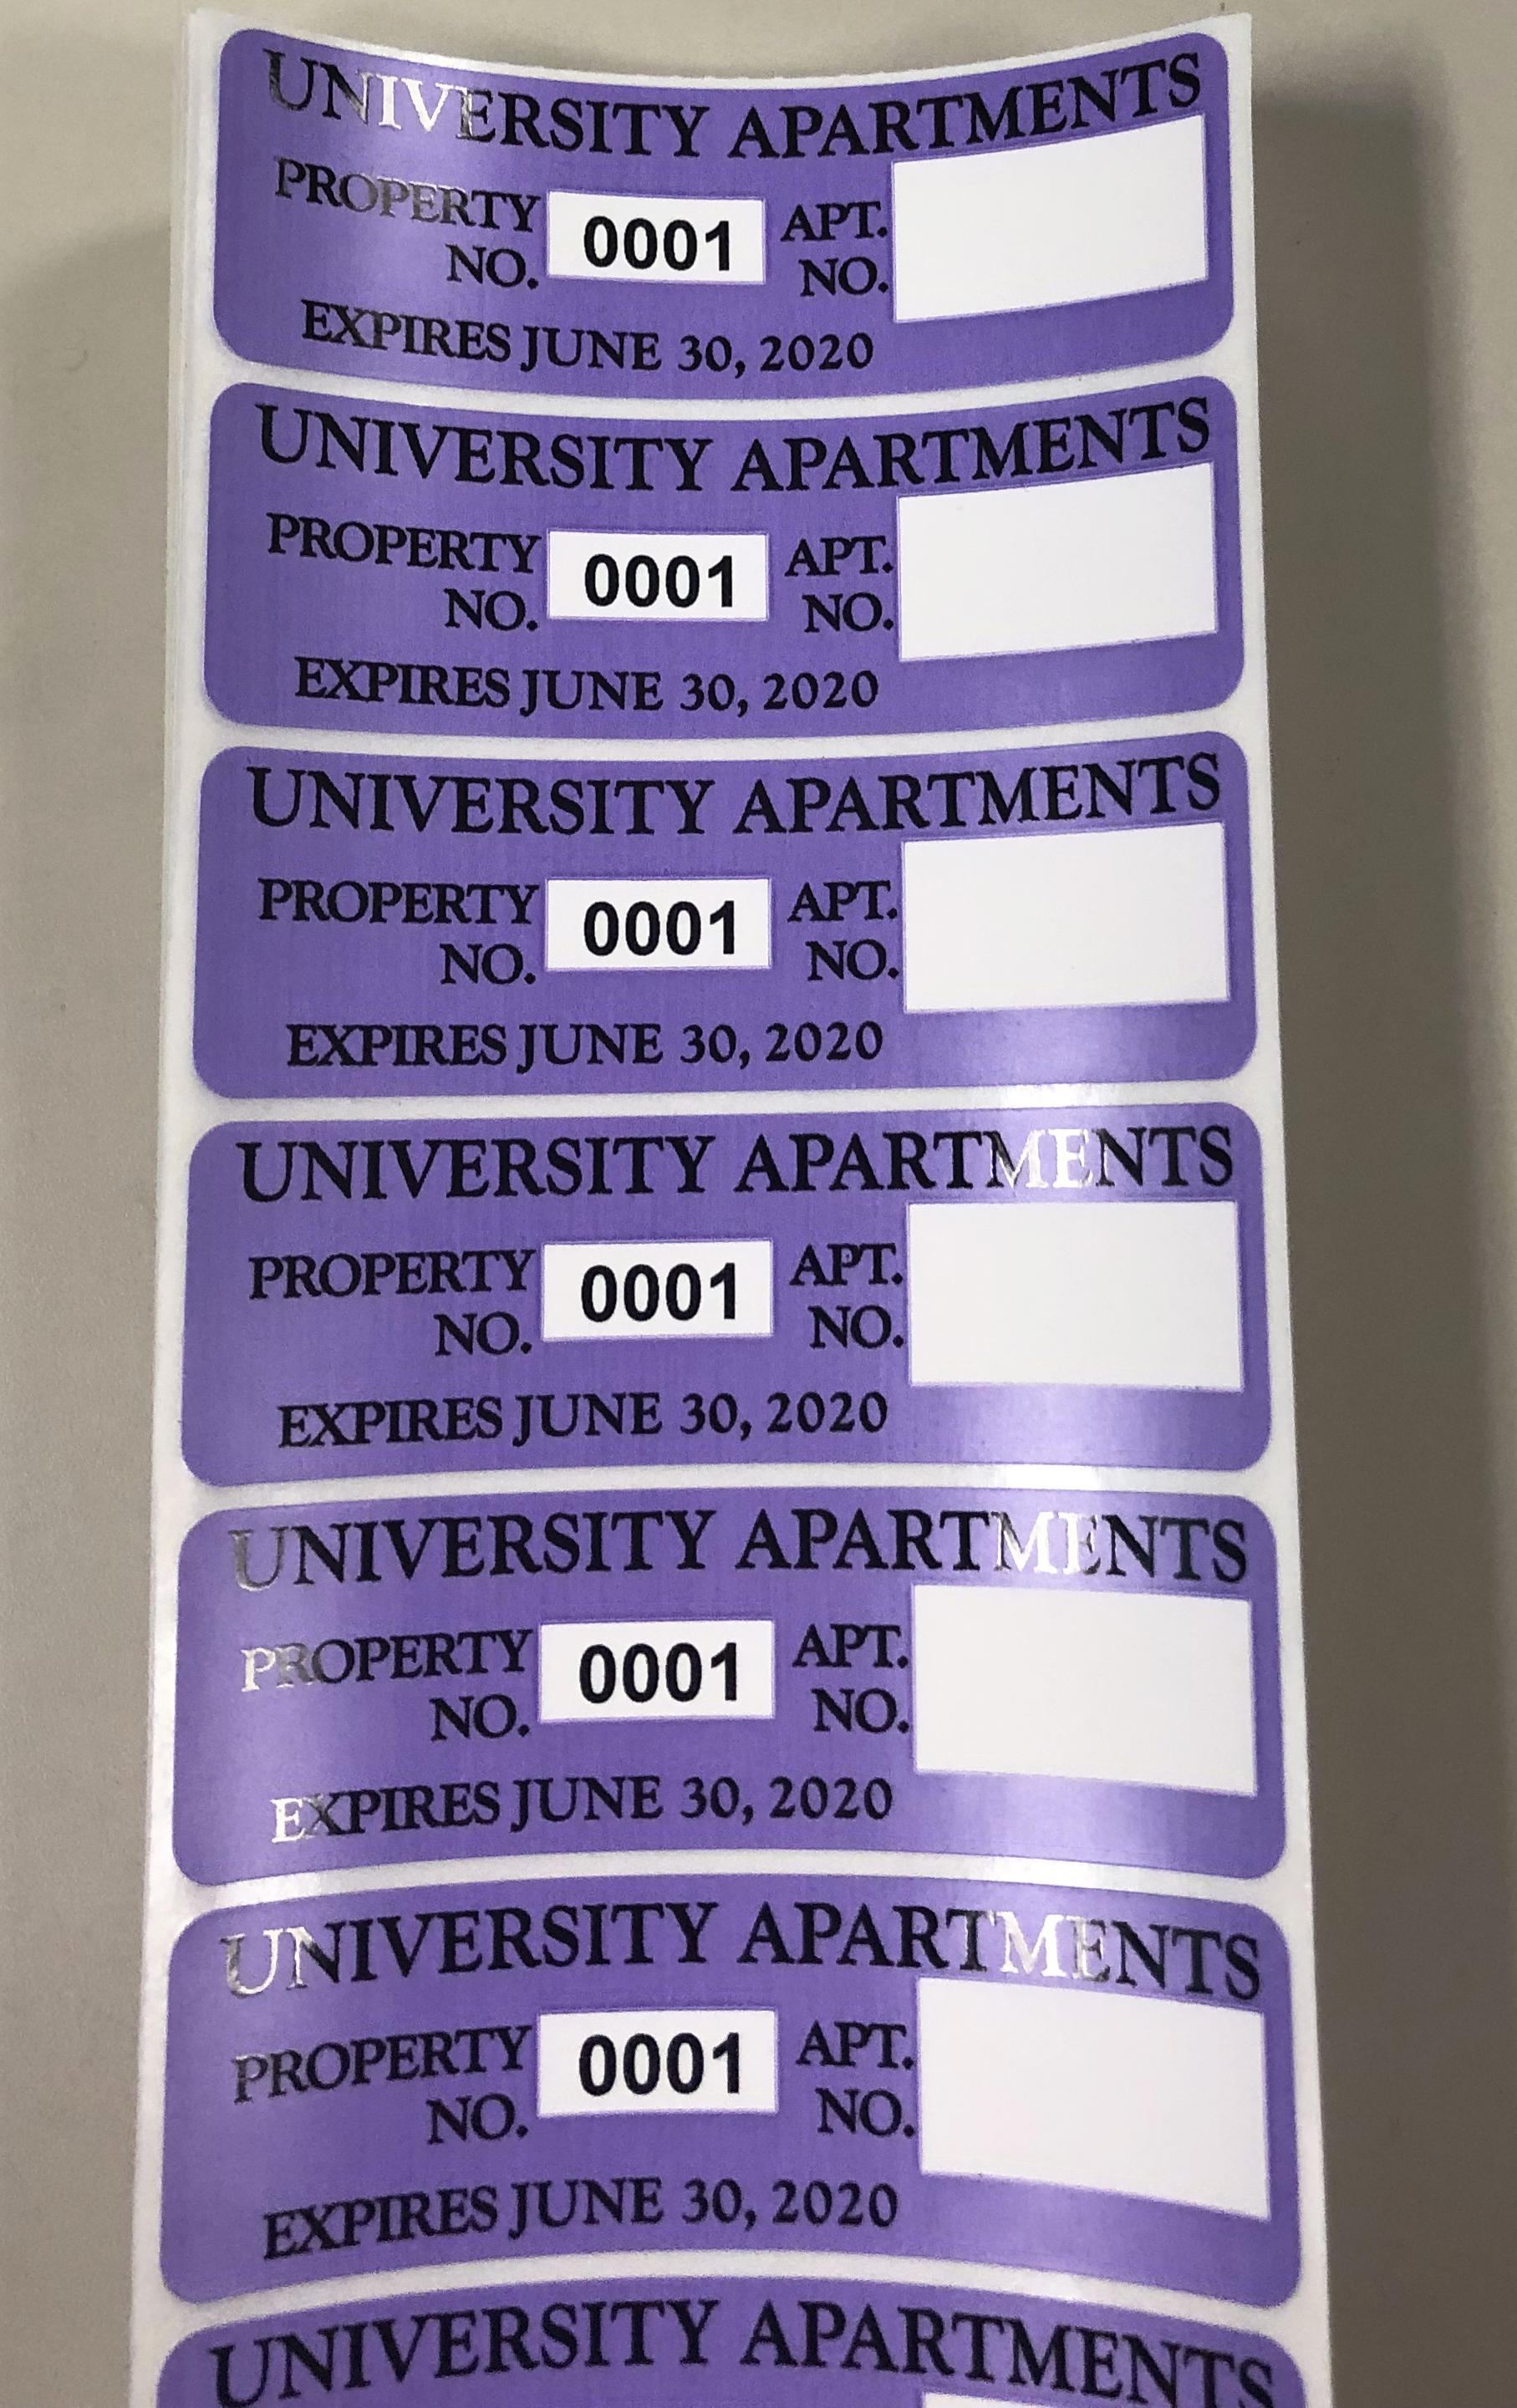 2018-19 dark purple property stickers for University Apartments residents.